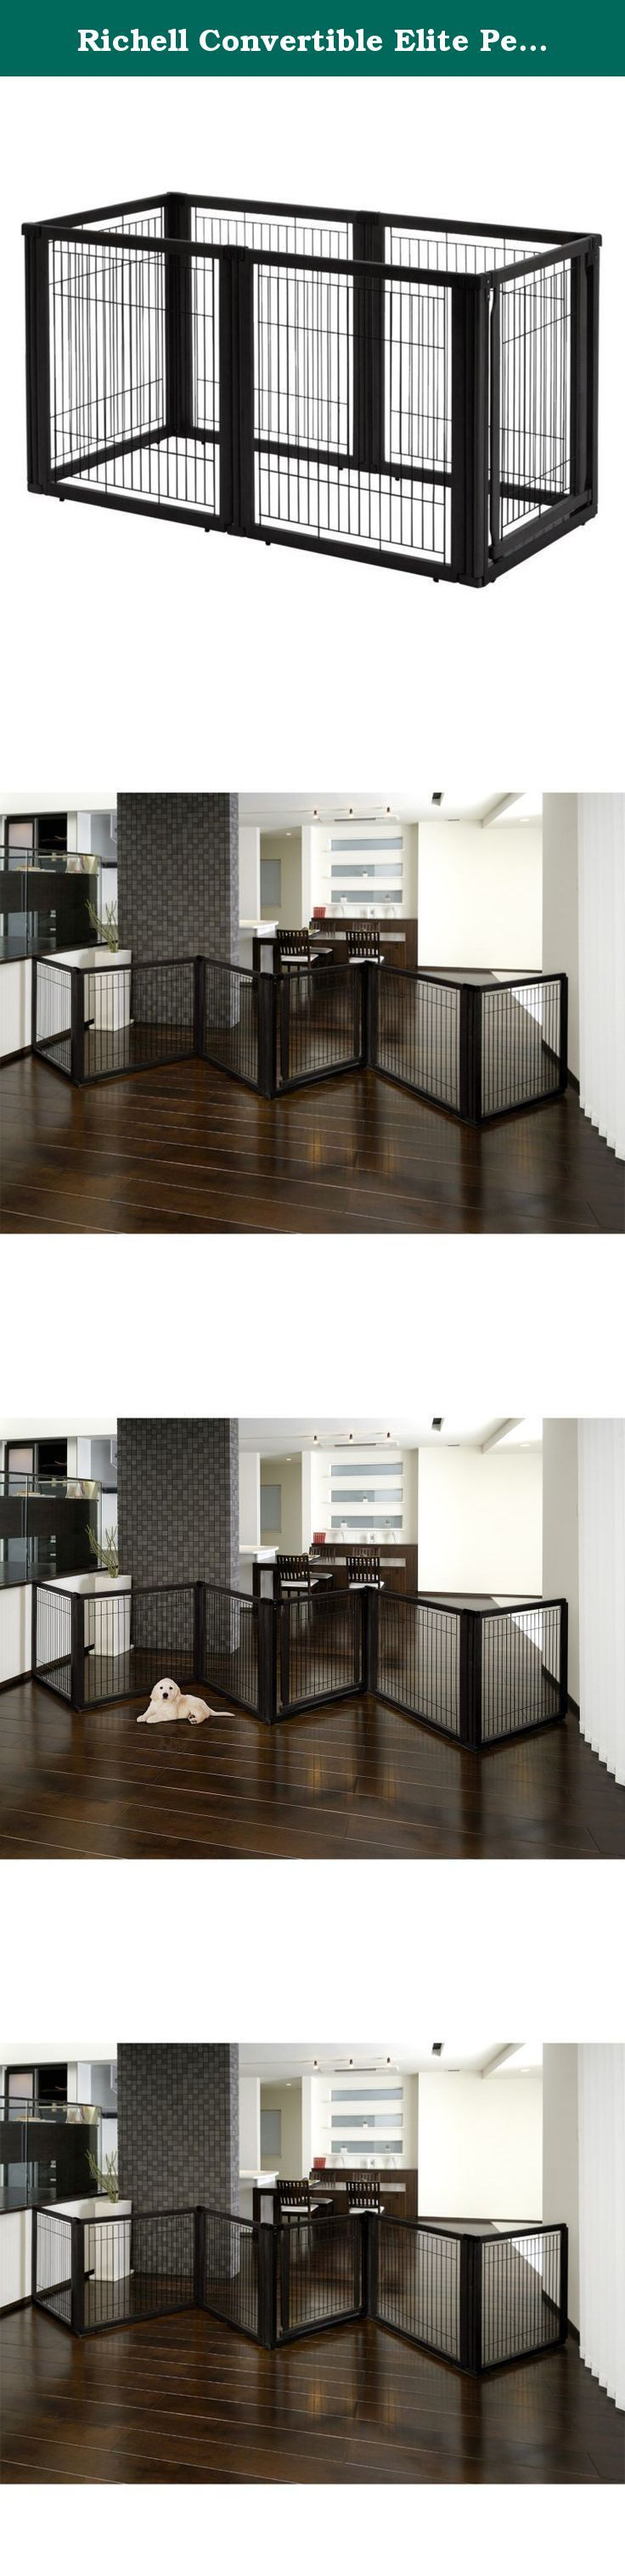 Richell Convertible Elite Pet Gate - 6 Panel -. The luxury of three pet products in one! The Richell Convertible Elite Pet Gate - 6 Panel - Black converts from a free standing pet gate to a room divider to a pet pen - in seconds! It's specifically designed to confine your pet safely in areas with larger openings, yet fit beautifully in any home decor. The gate includes a lockable door that allows you to move freely from room to room without having to shuffle the entire unit. Each panel…